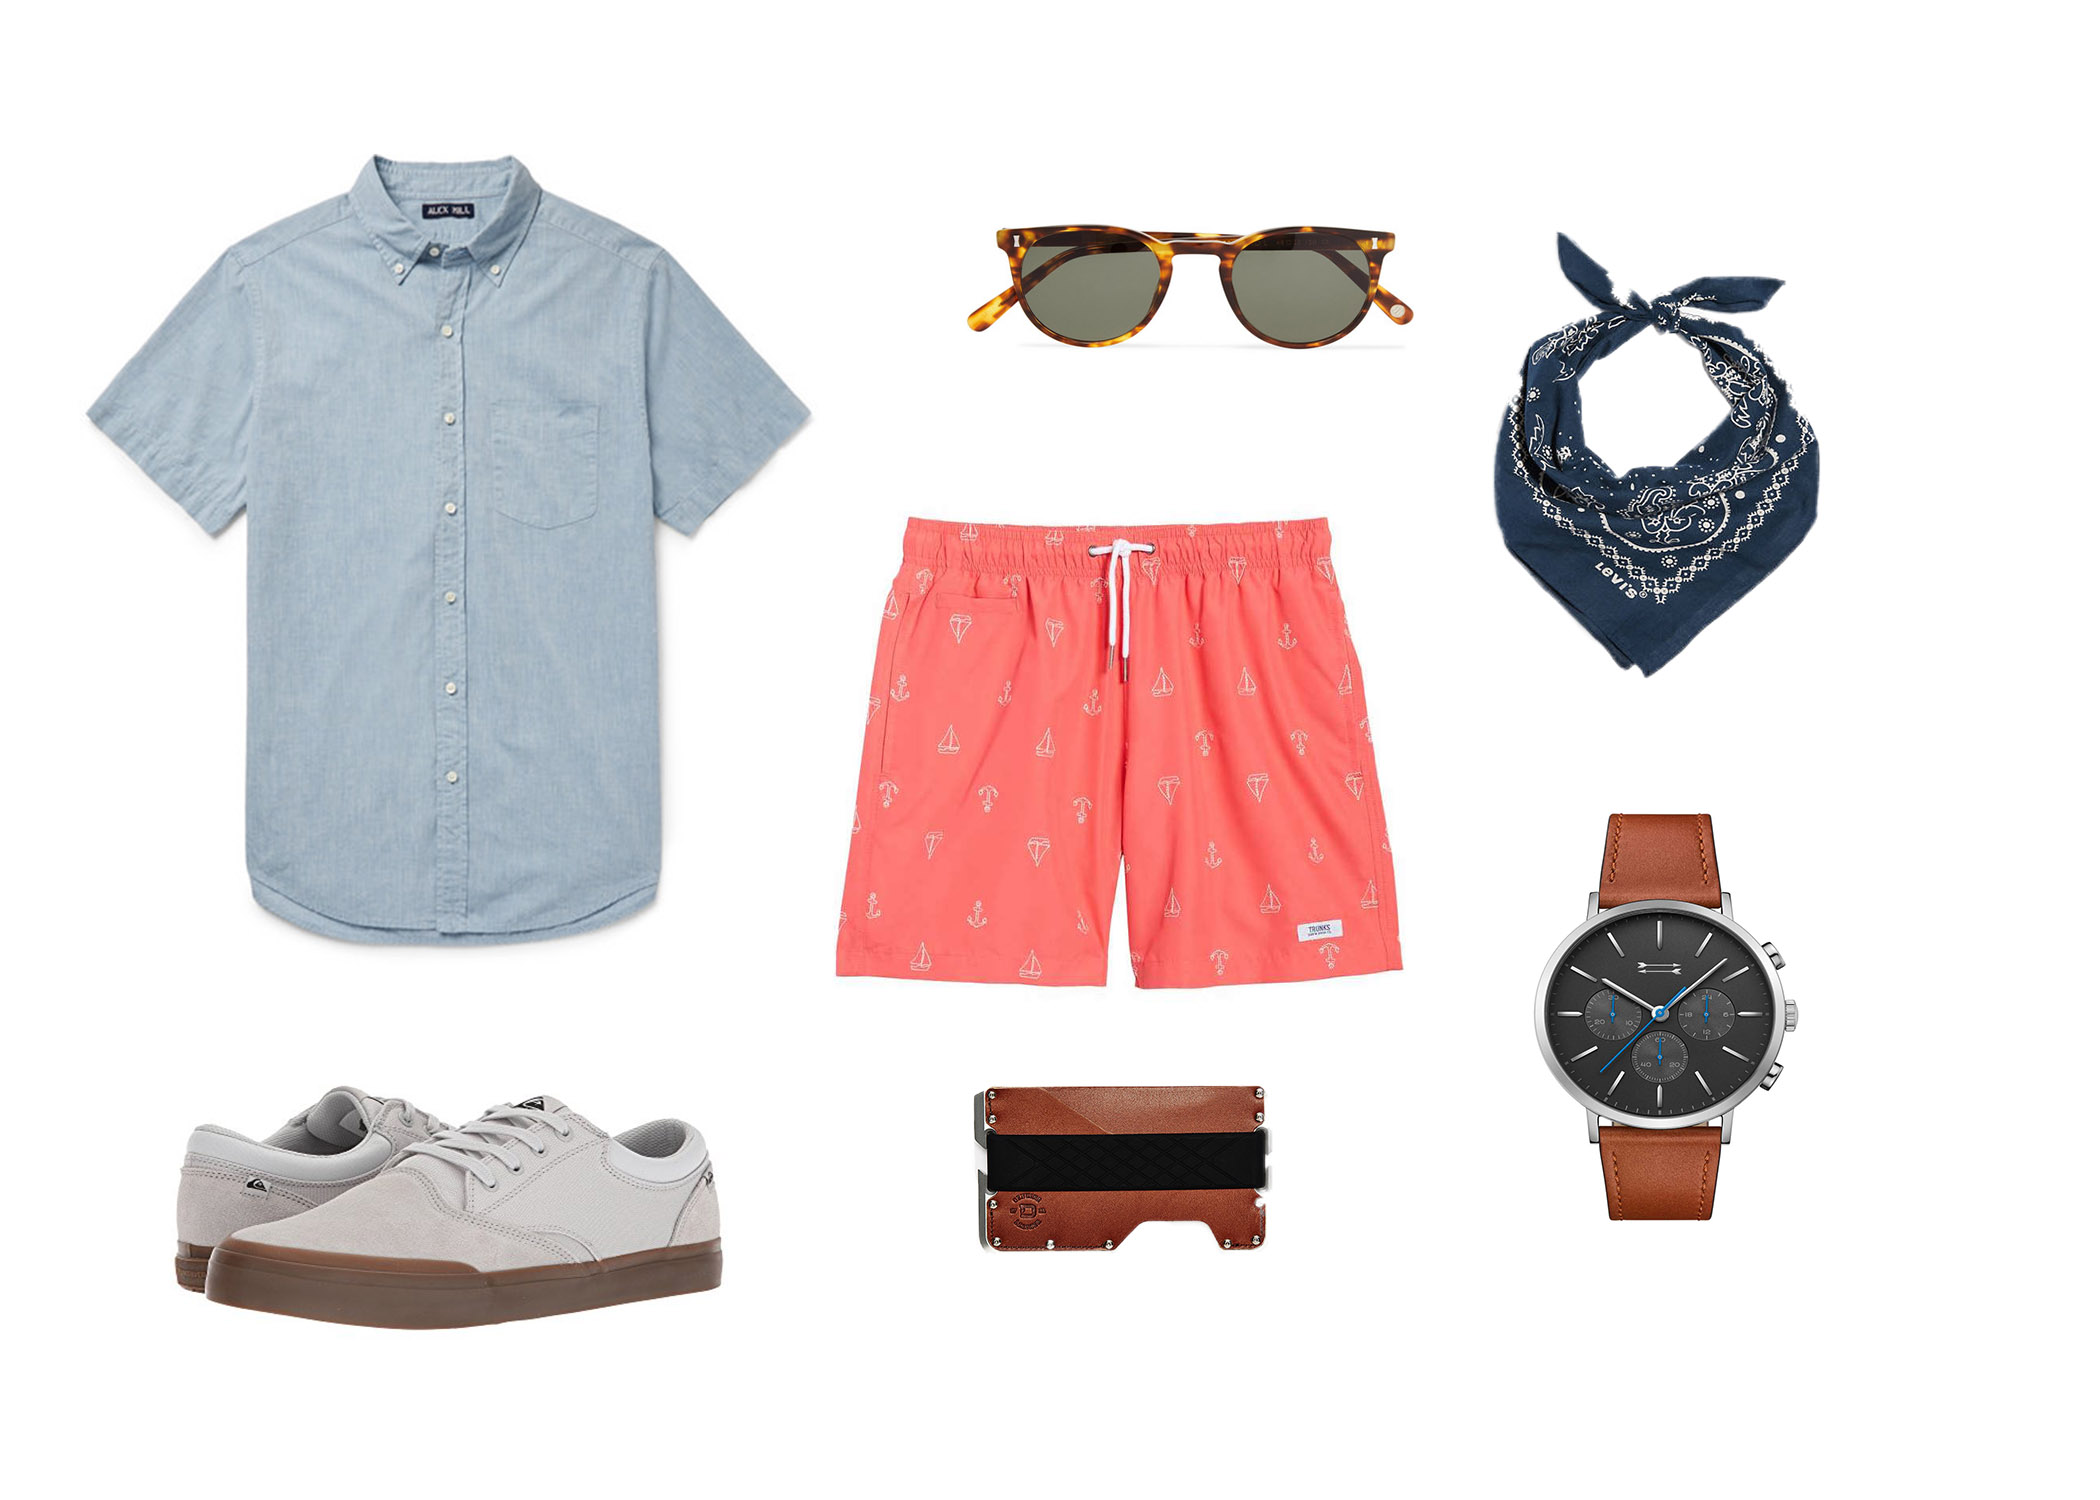 memorial day weekend guys outfit inspiration